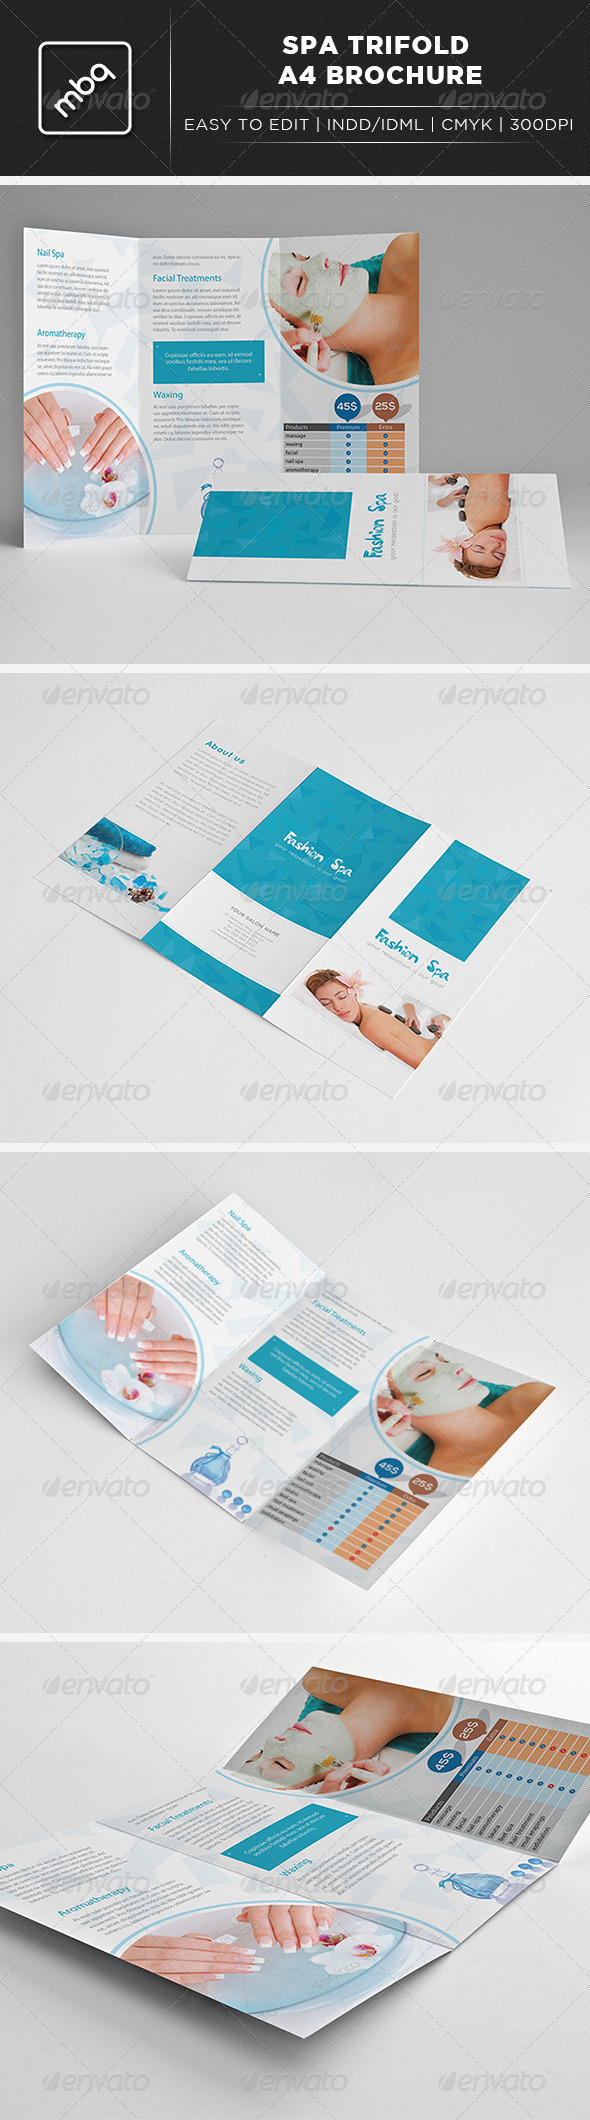 GraphicRiver Spa Trifold A4 Brochure 3025291